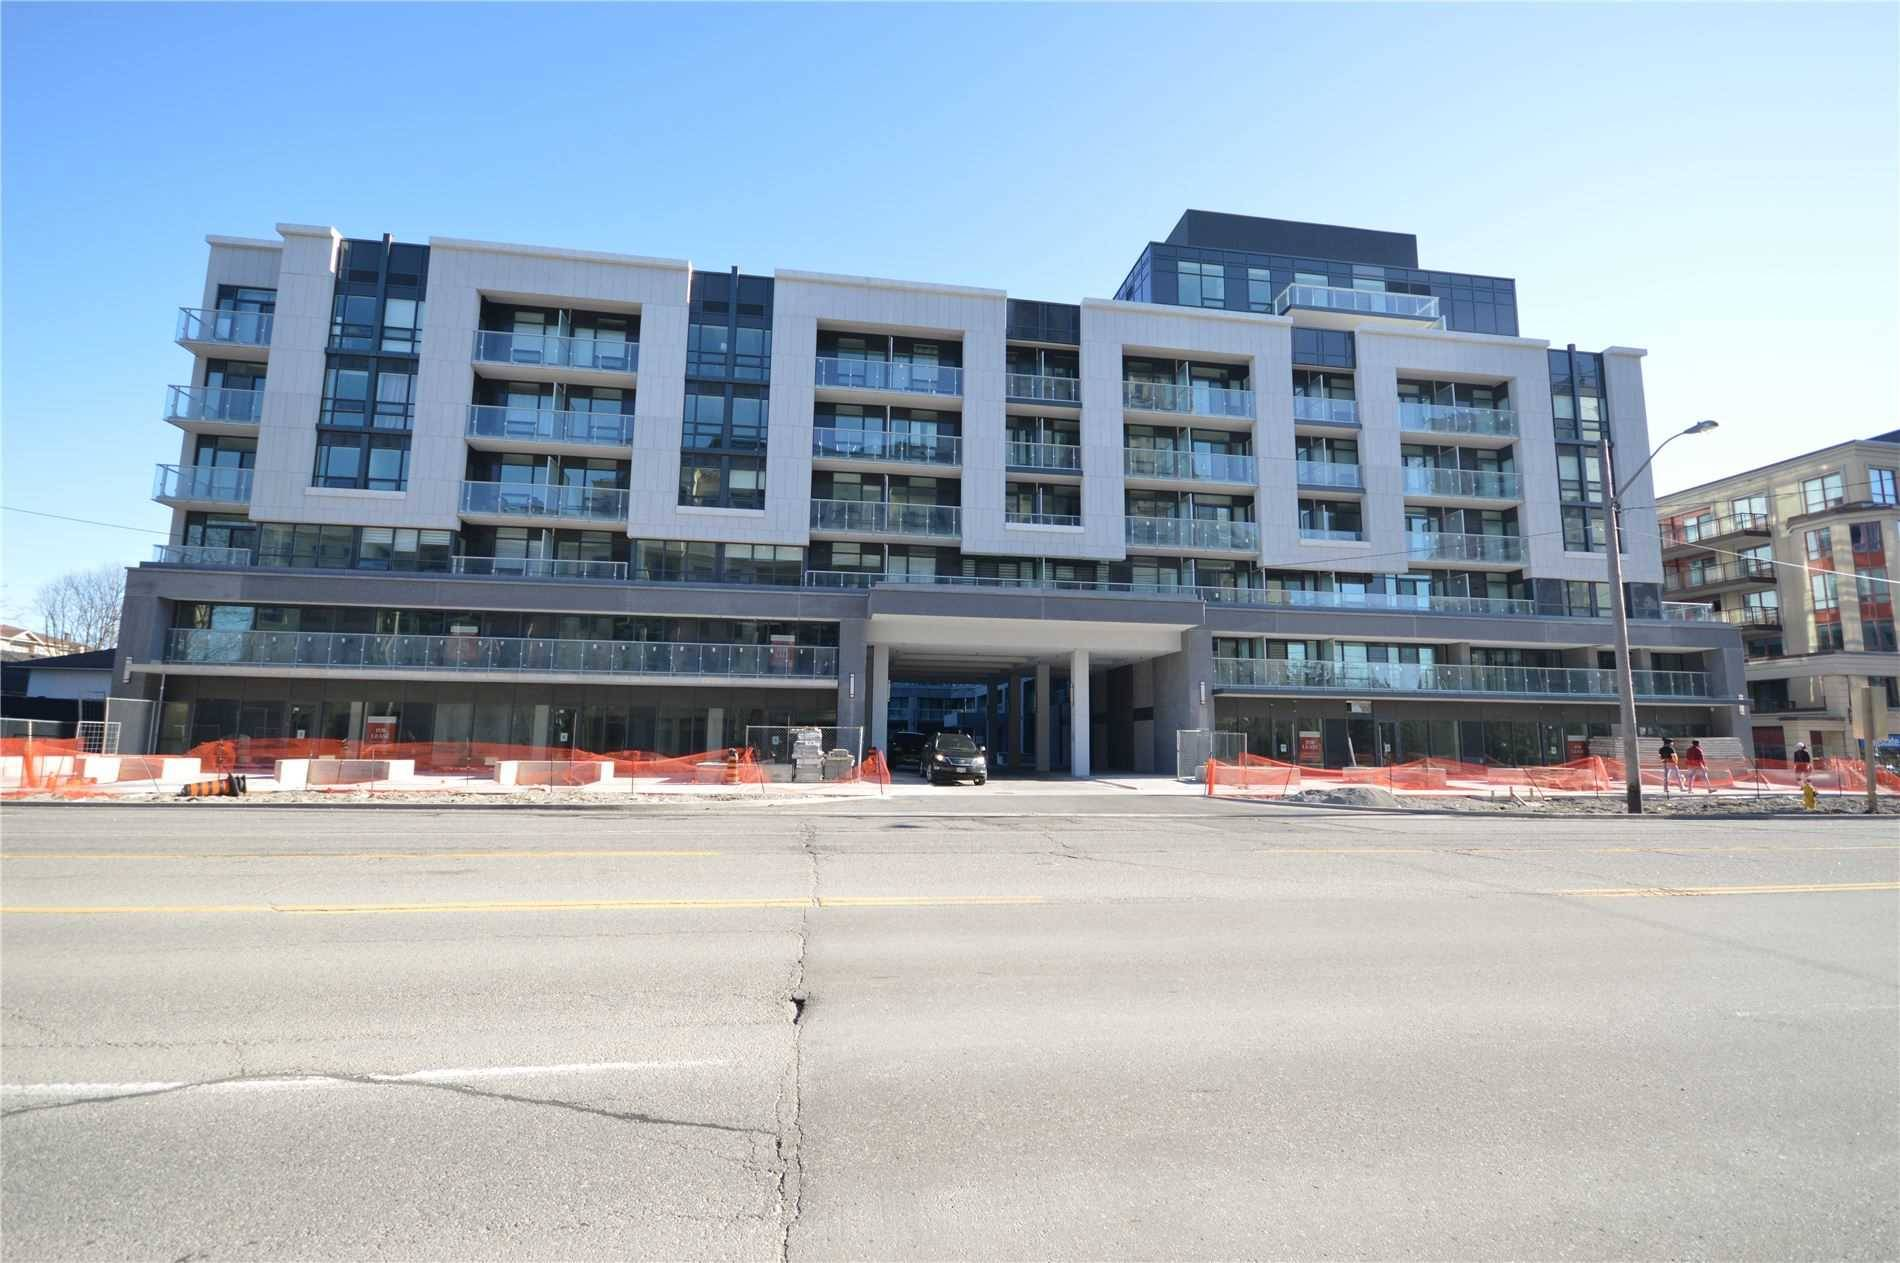 Buliding: 621 Sheppard Avenue East, Toronto, ON